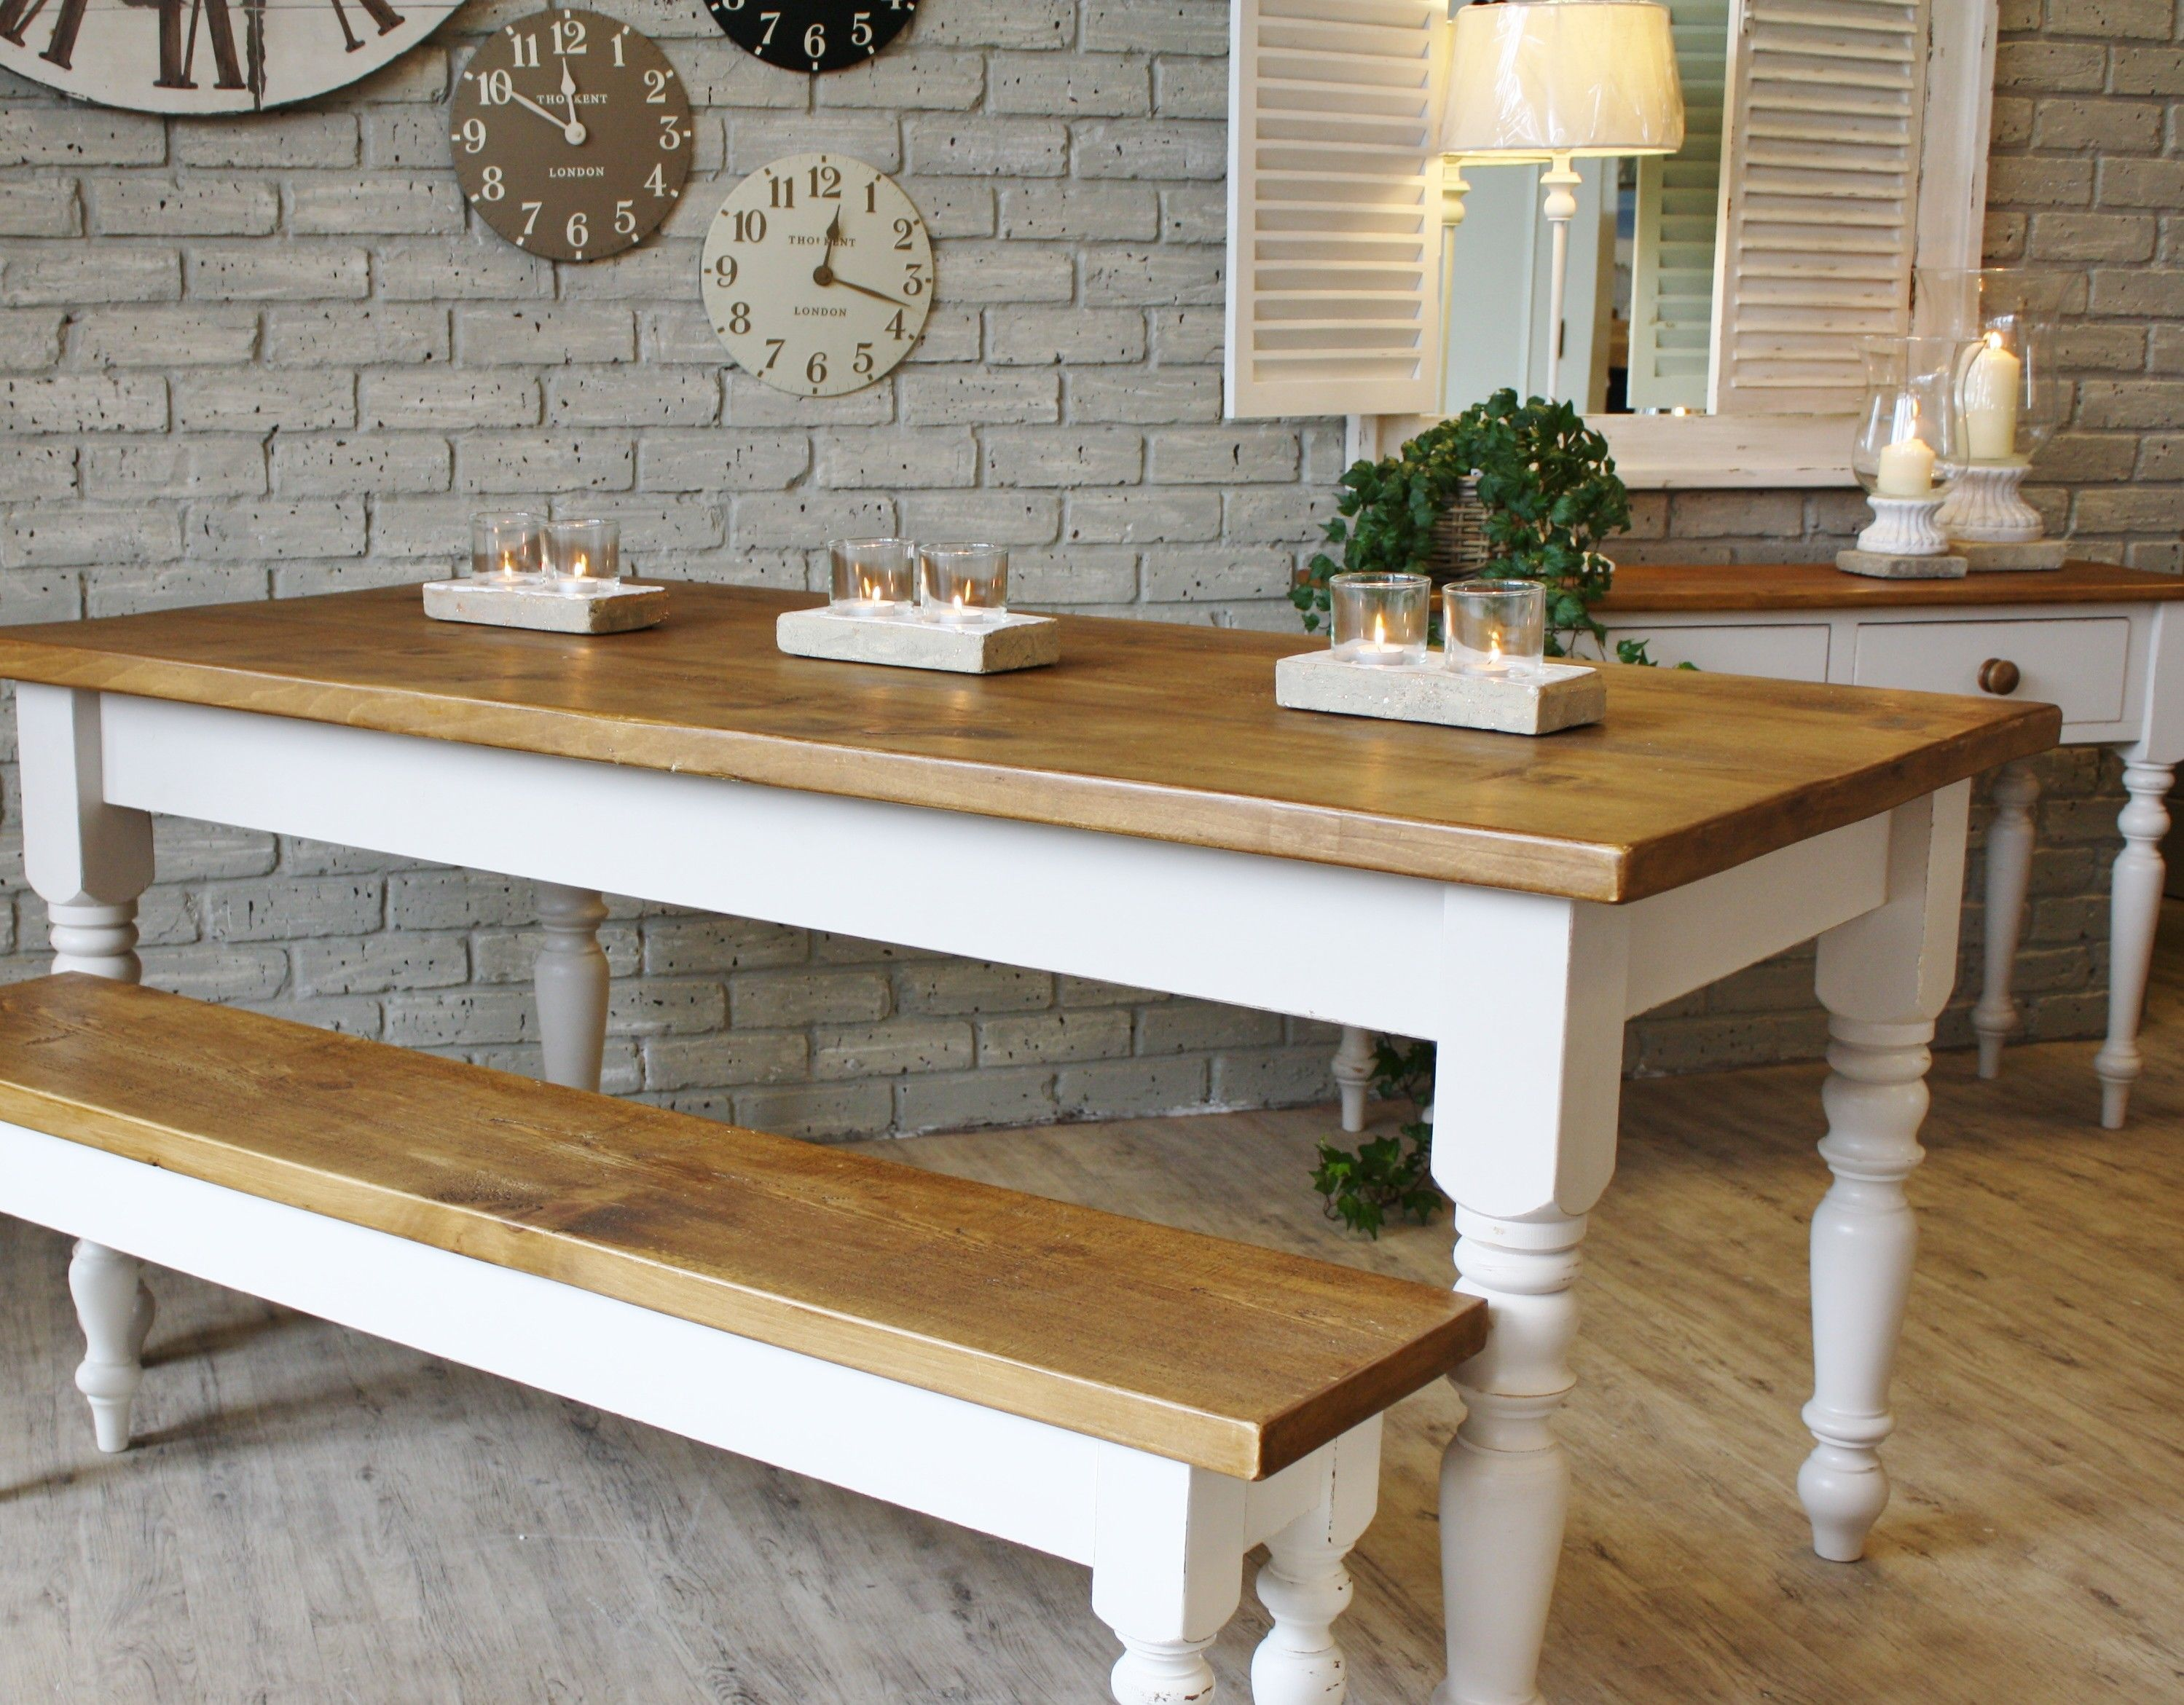 Nook Table Like The Bench The White Accent And The Smooth Alluring Kitchen Table With A Bench Decorating Design